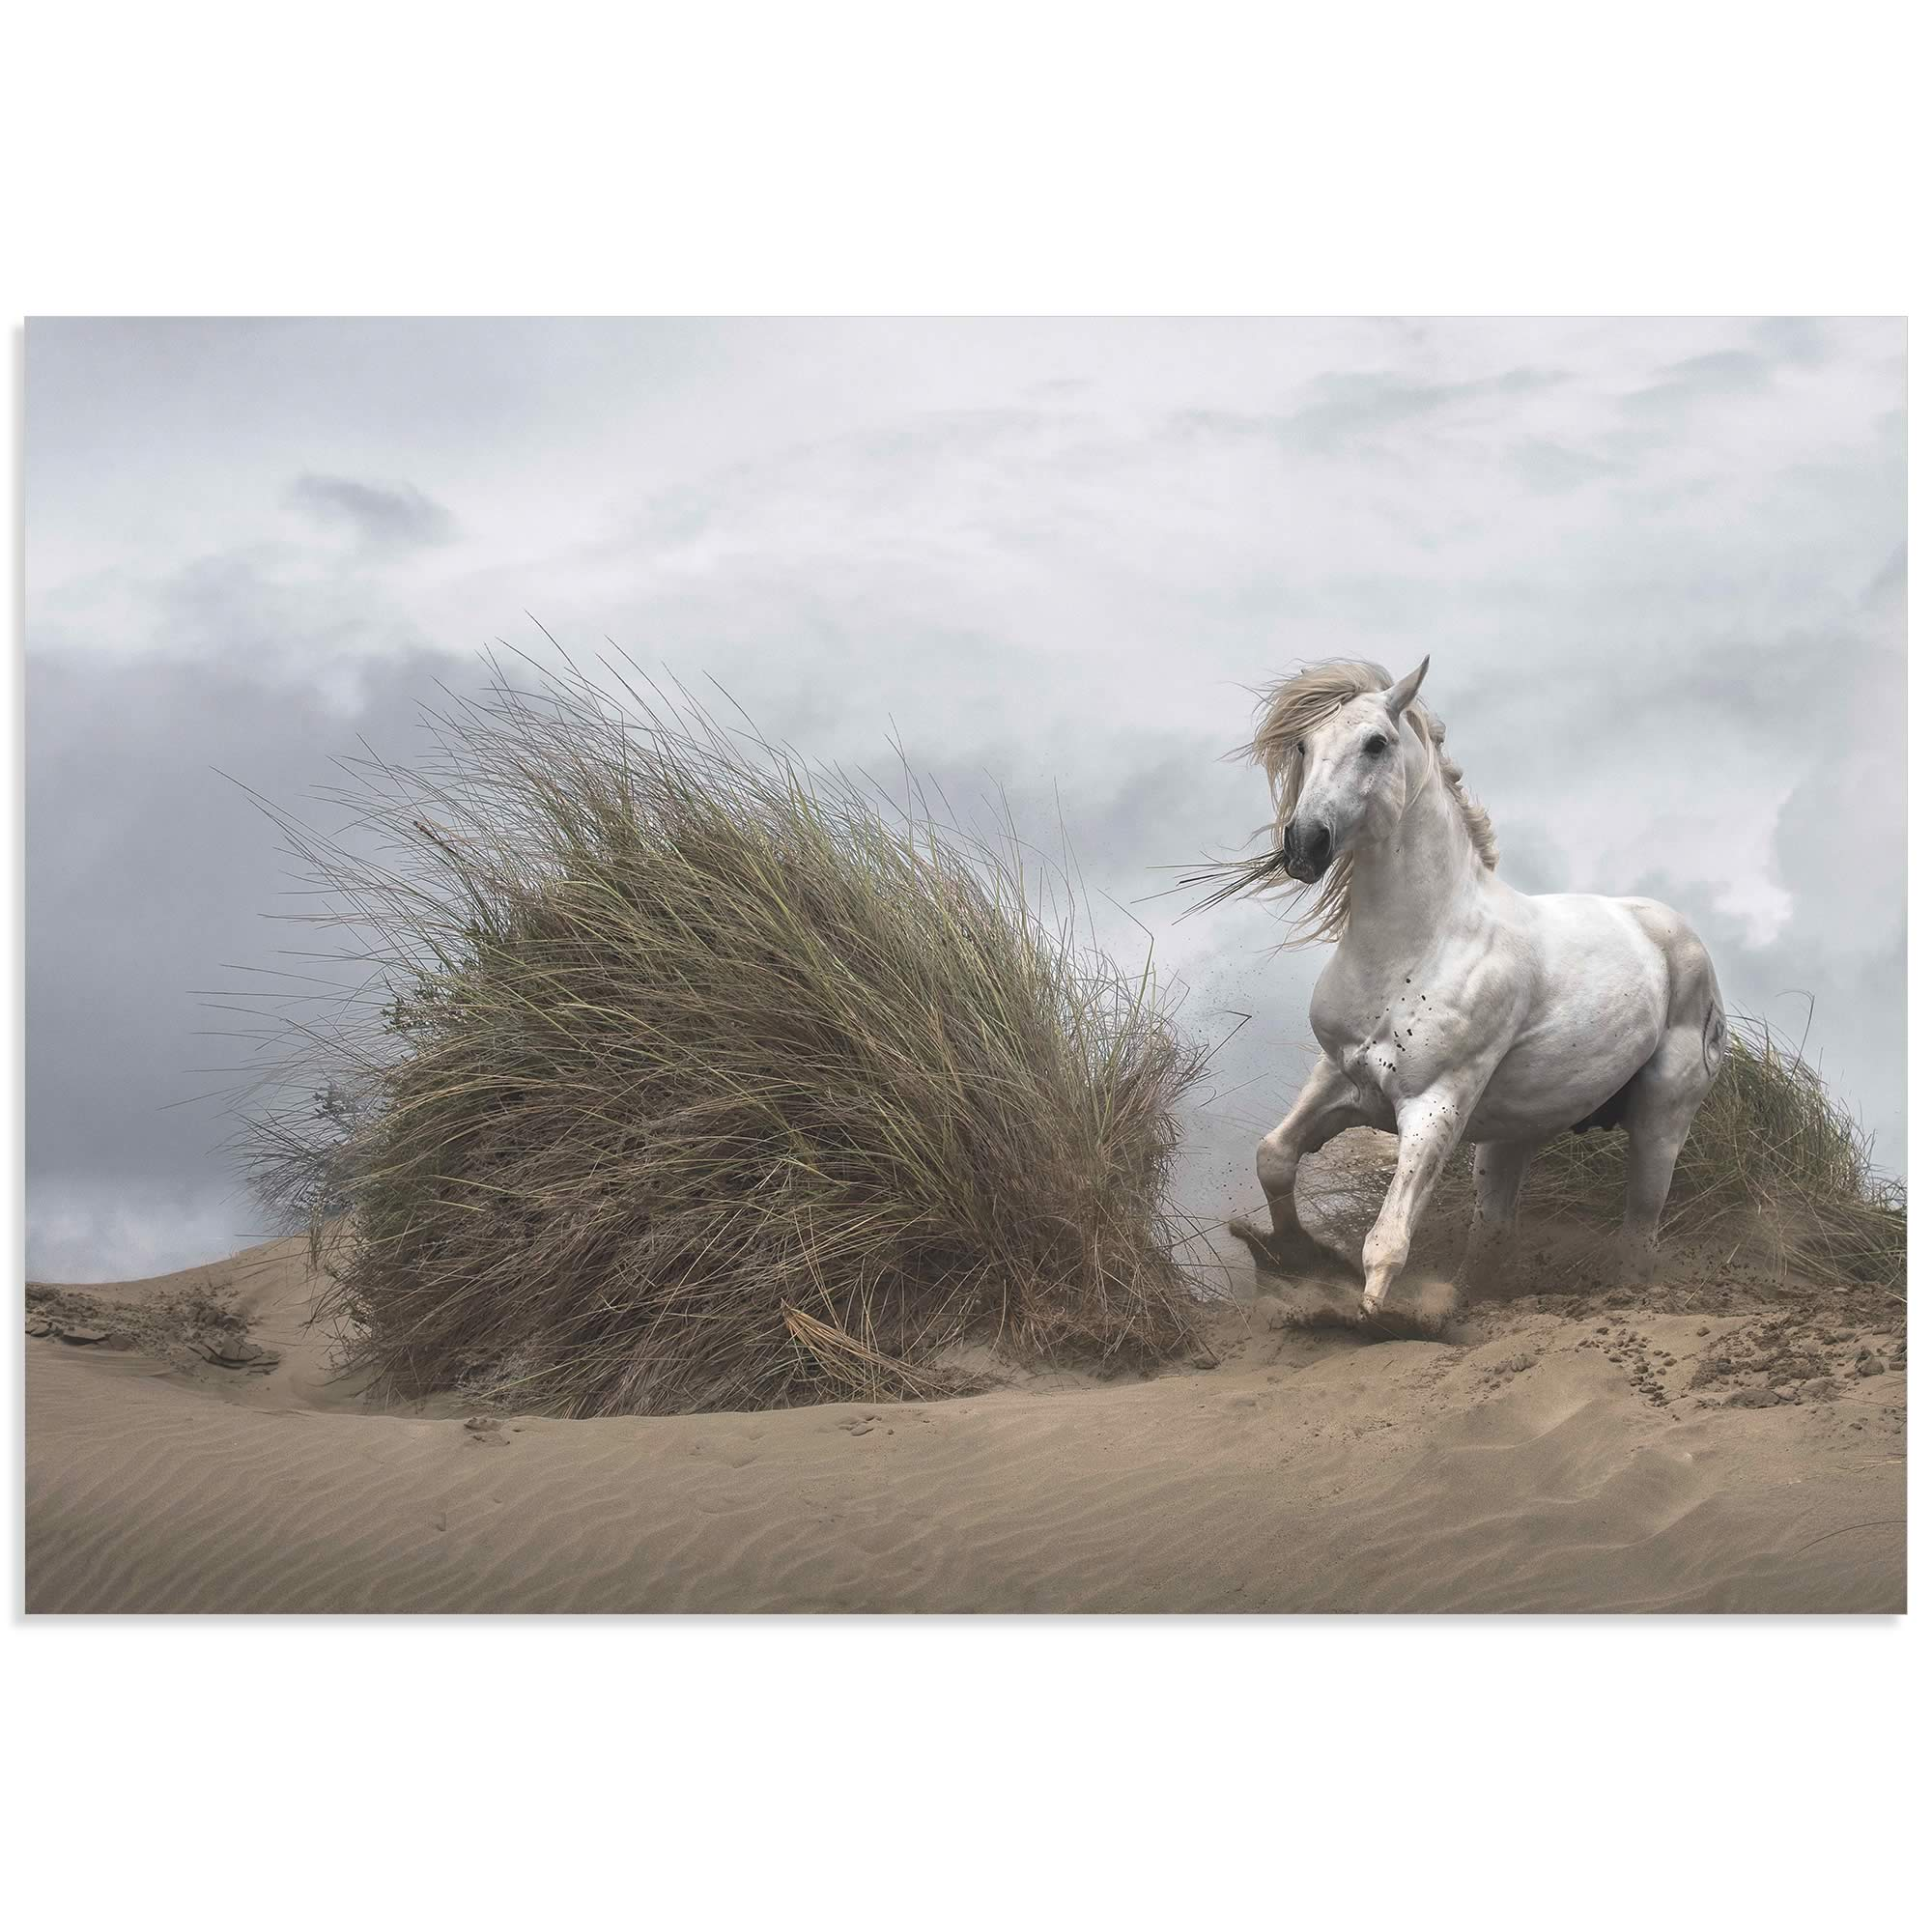 White Stallion by Lucie Bressy - Wild Horse Art on Metal or Acrylic